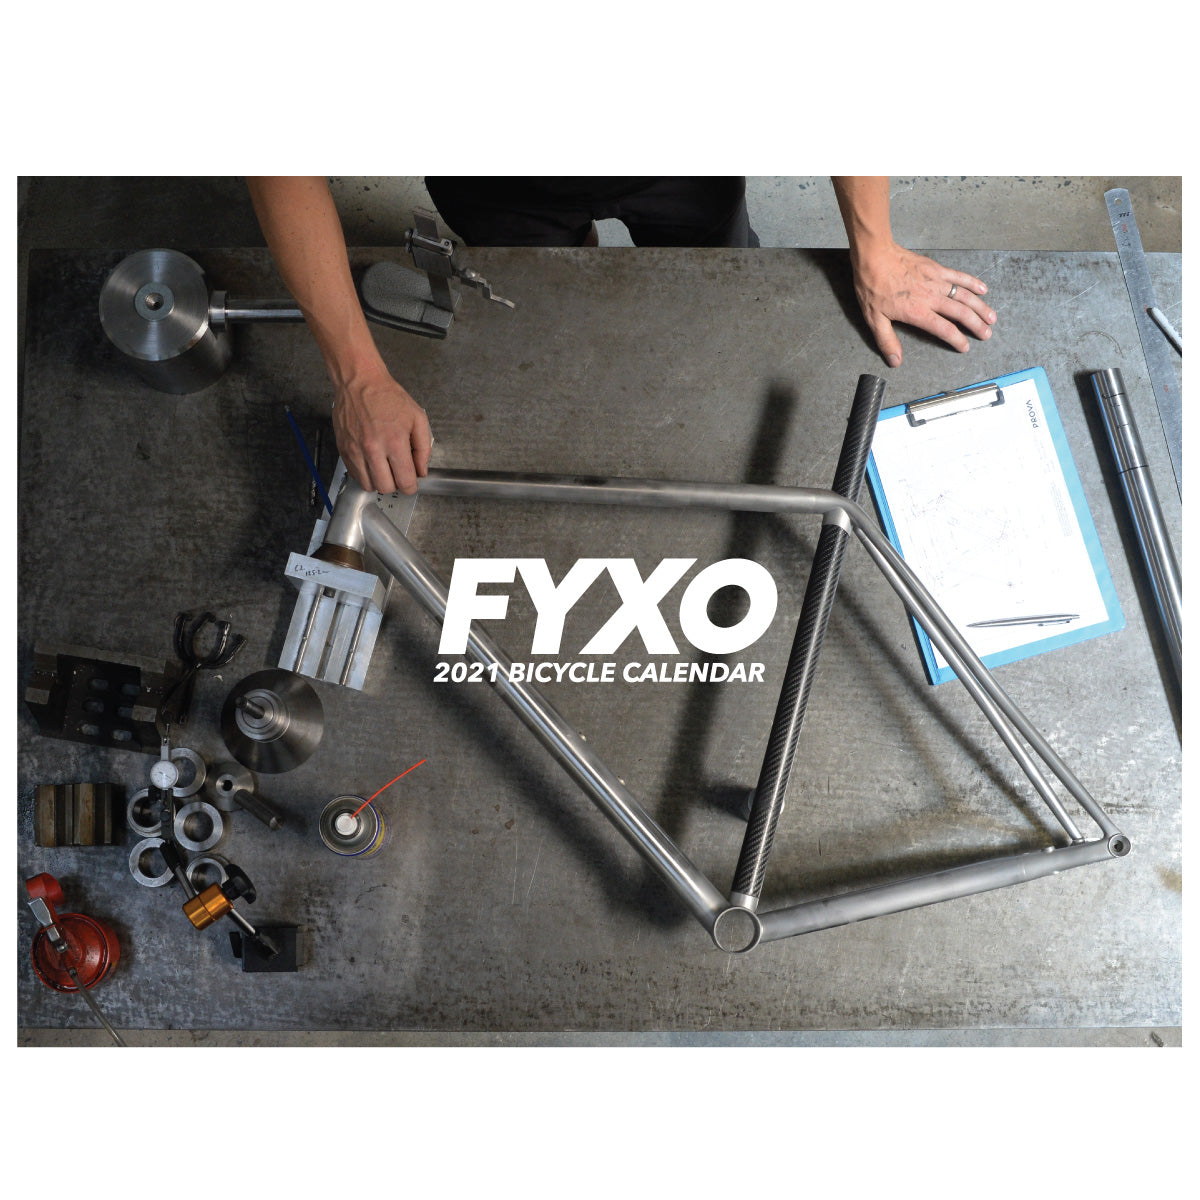 FYXO Bicycle Calendar 2021 - FYXO Cycling Apparel